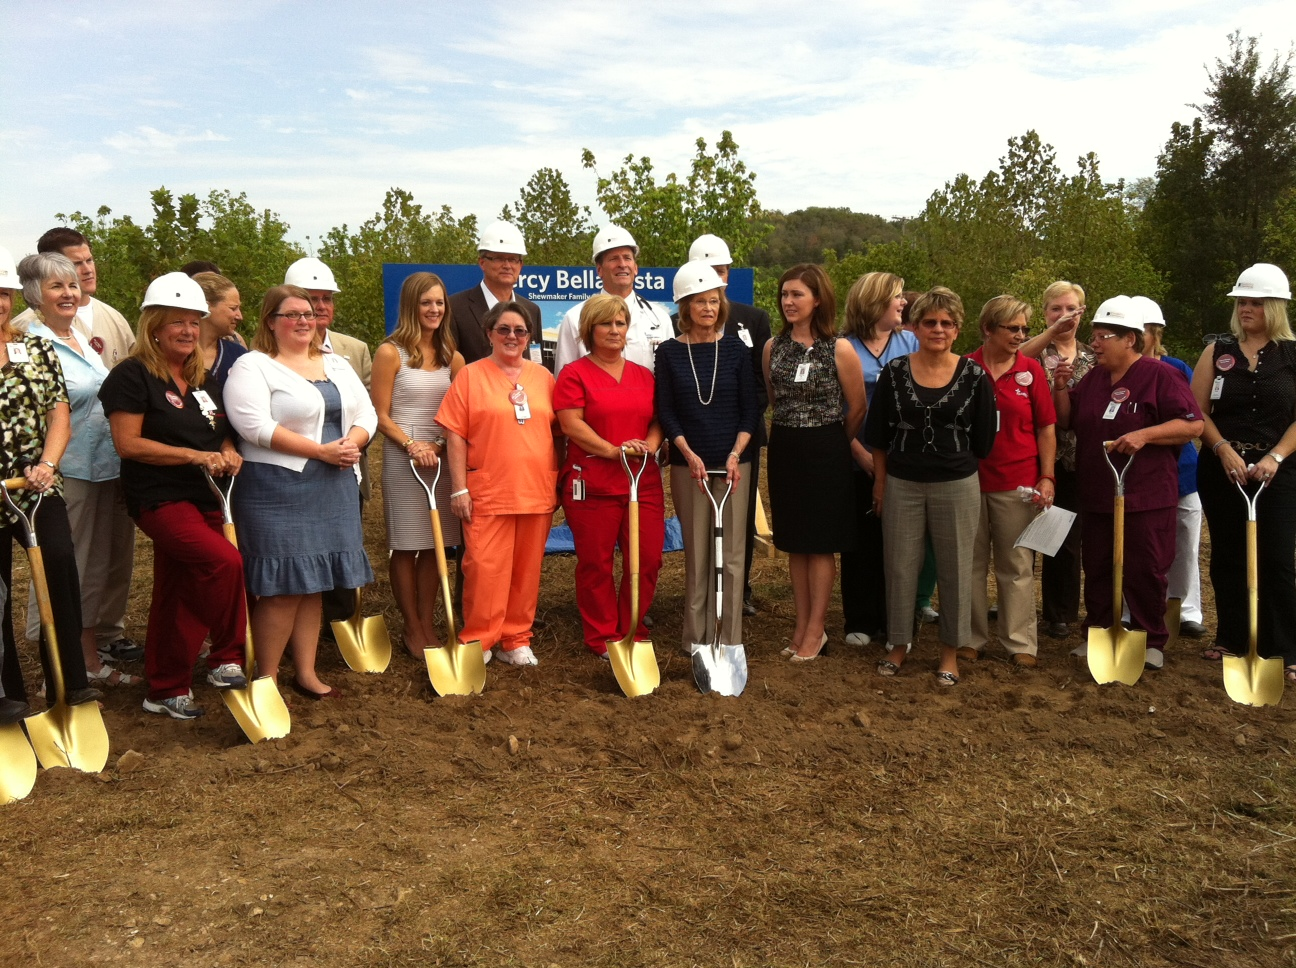 Mercy Bella Vista Groundbreaking, photo courtesy Martine Pollard